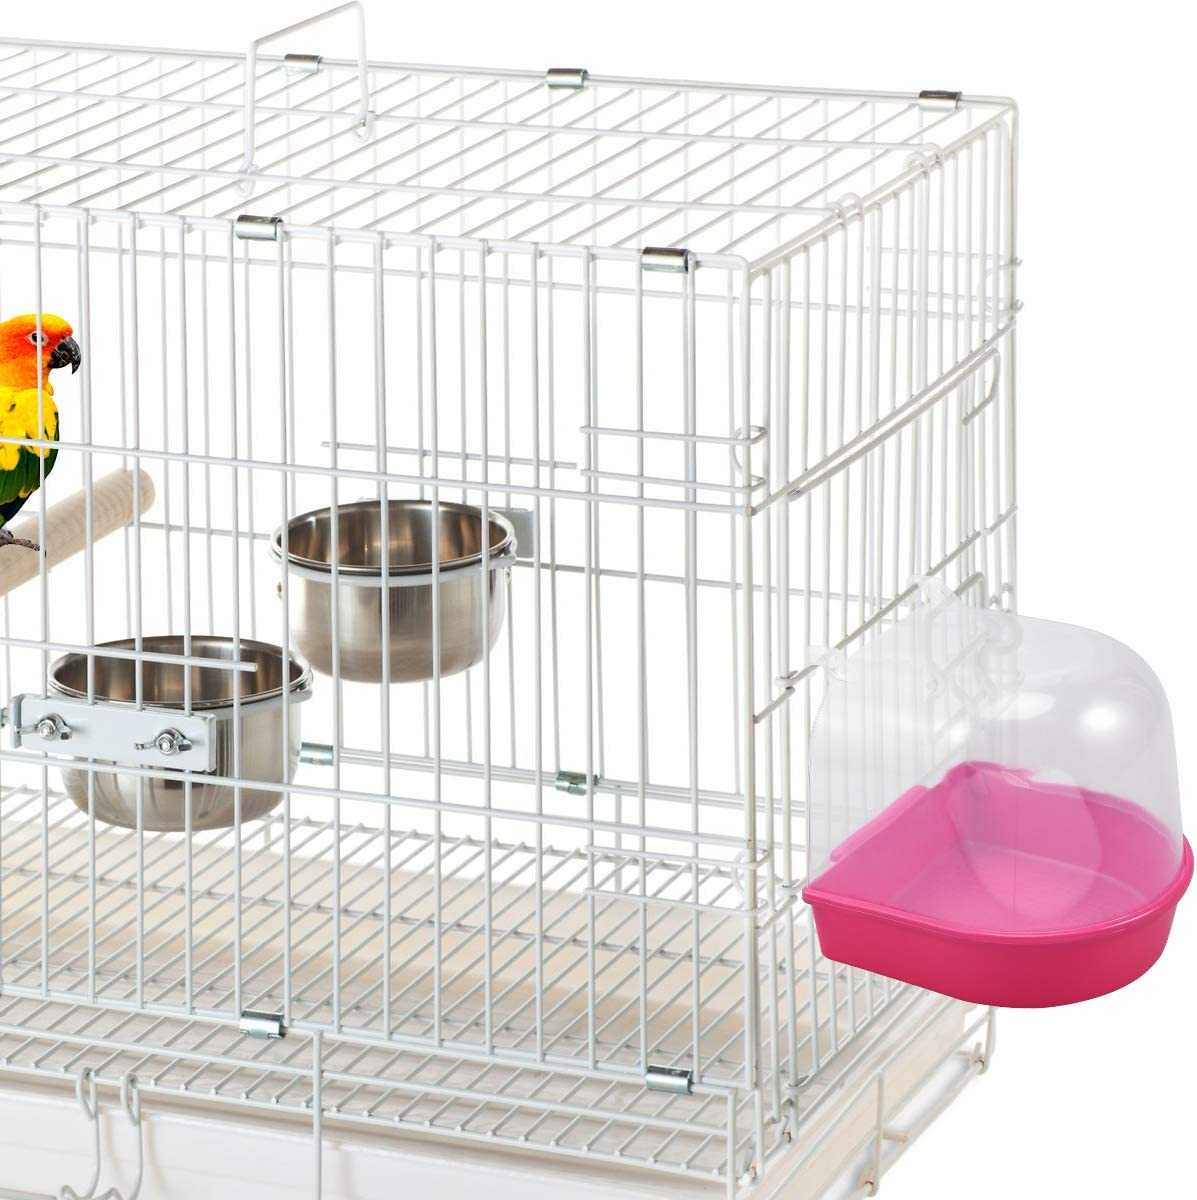 POPETPOP Caged Bird Bath Multi Cage Bird Bath Covered for Small Birds Parrot Canary Budgies Parrot Red